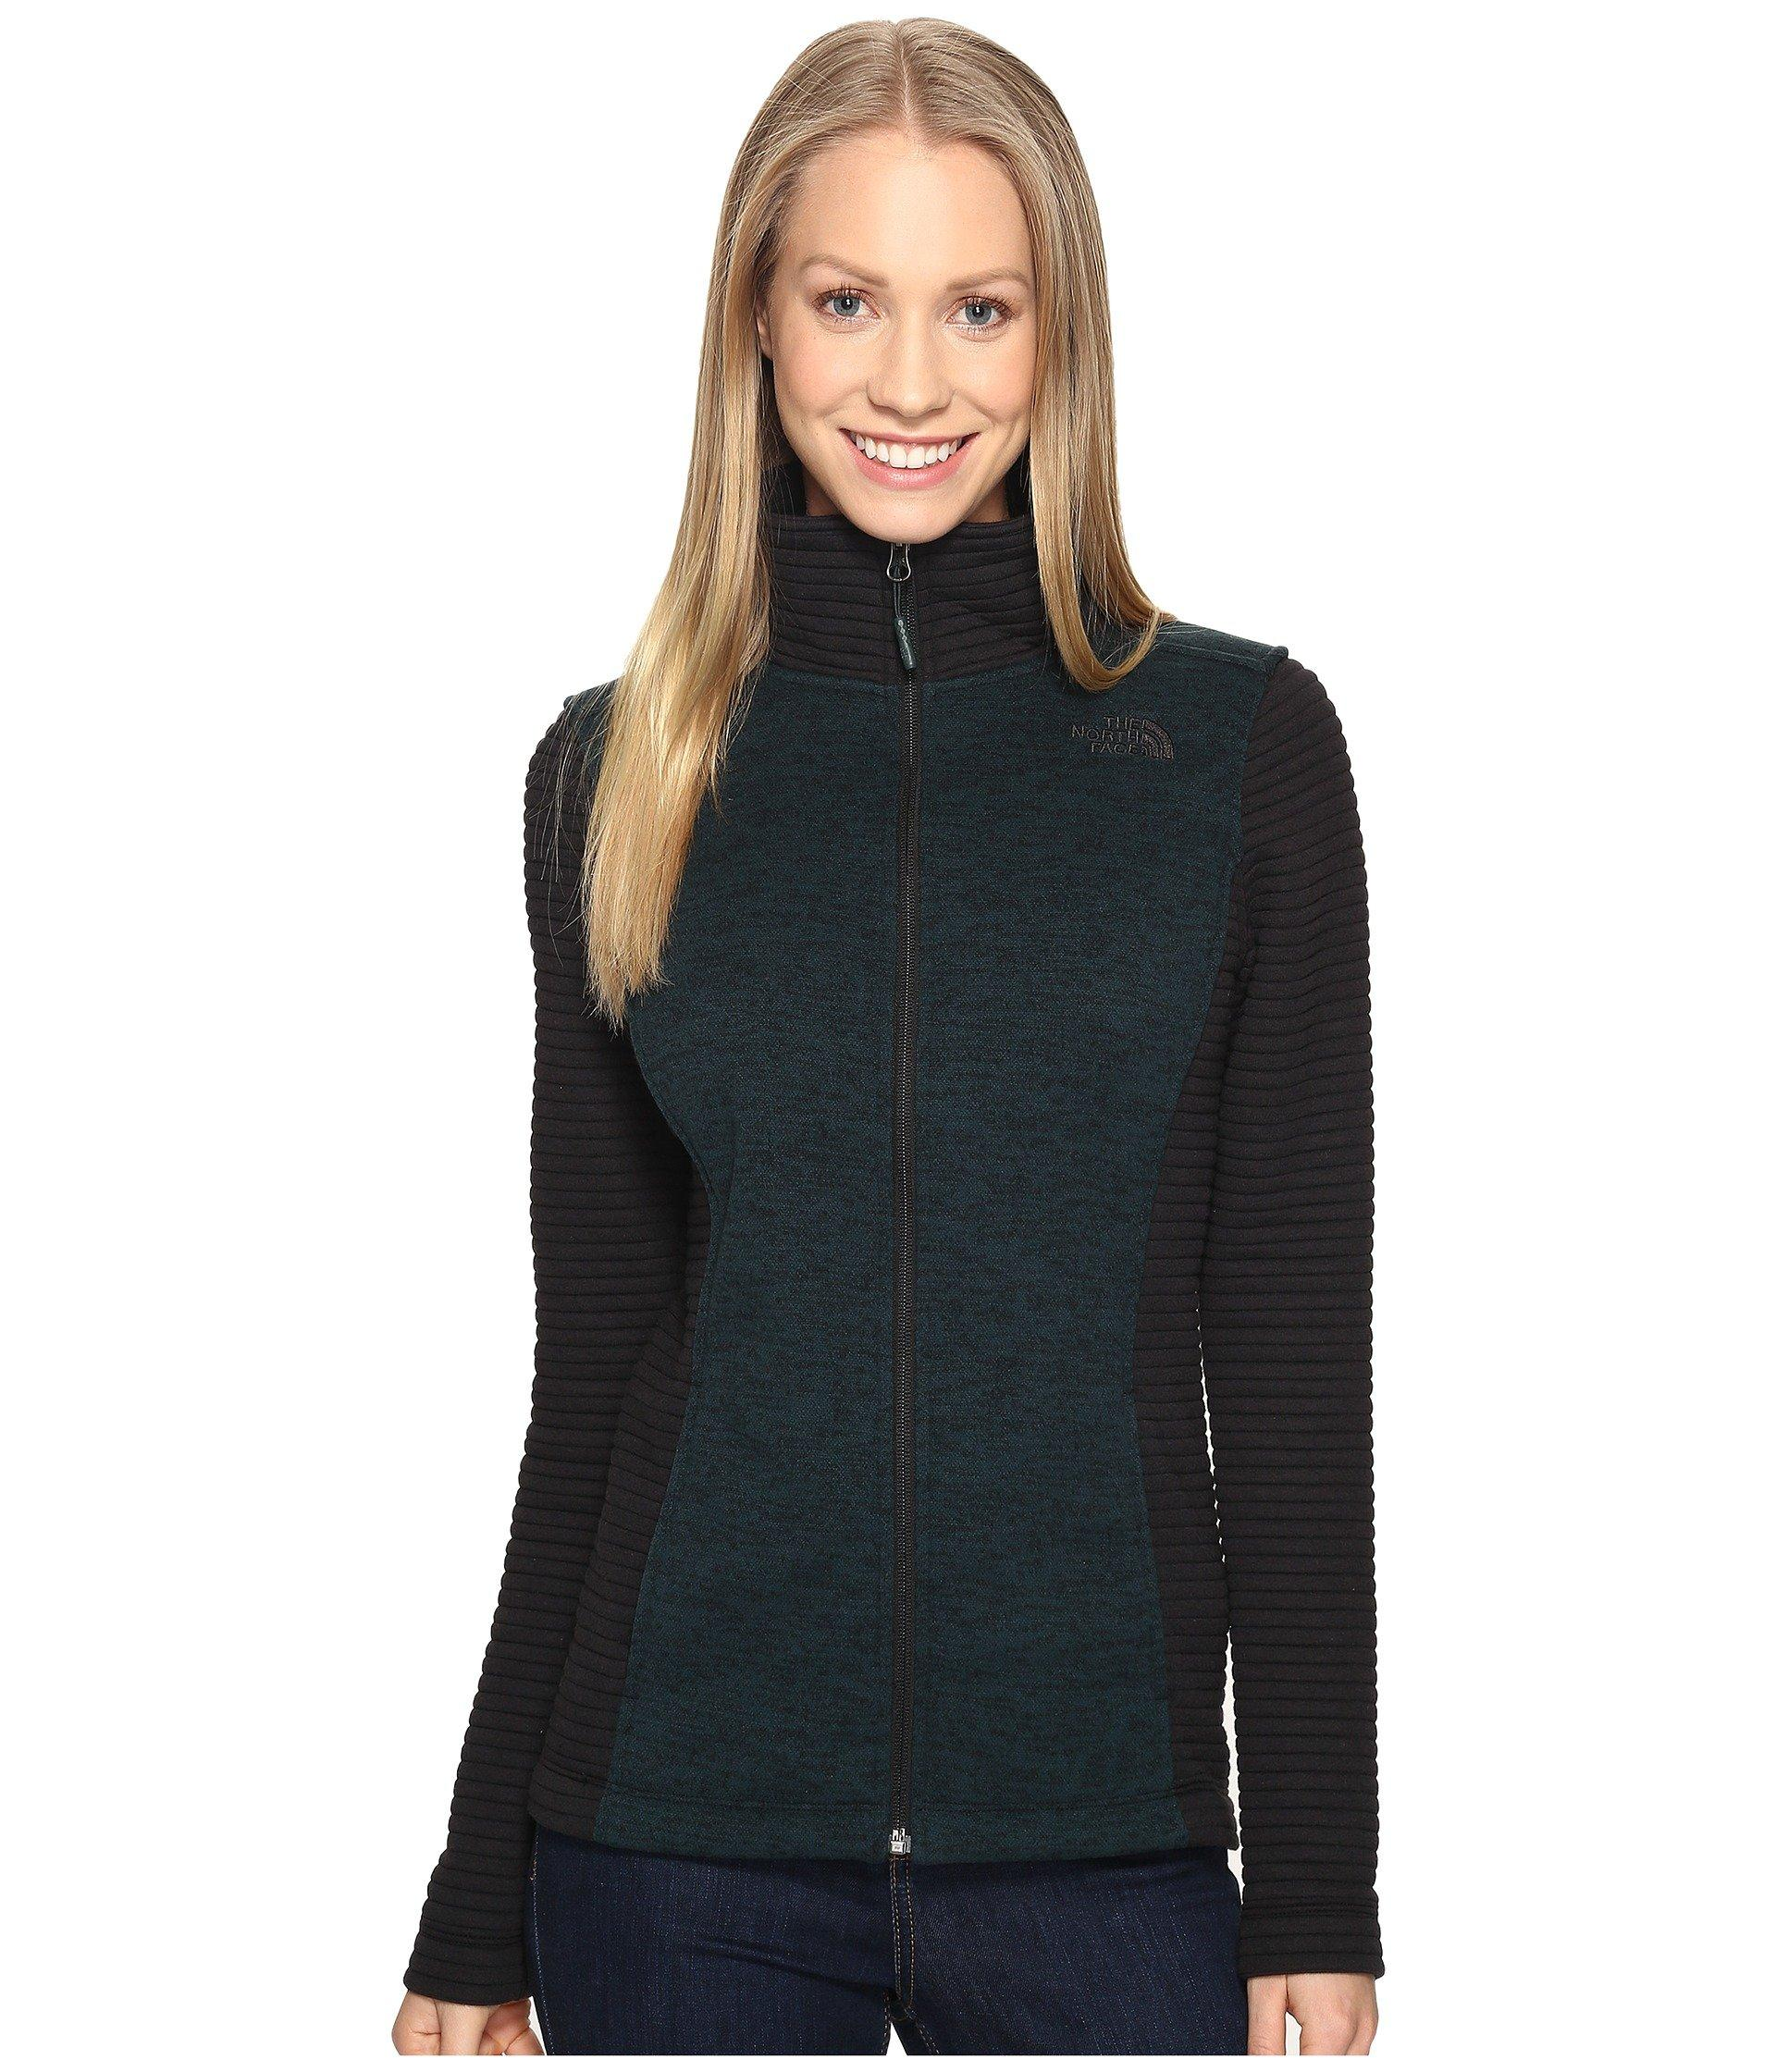 788397fdb Indi Full Zip Jacket, Darkest Spruce Heather/Tnf Black (Prior Season)